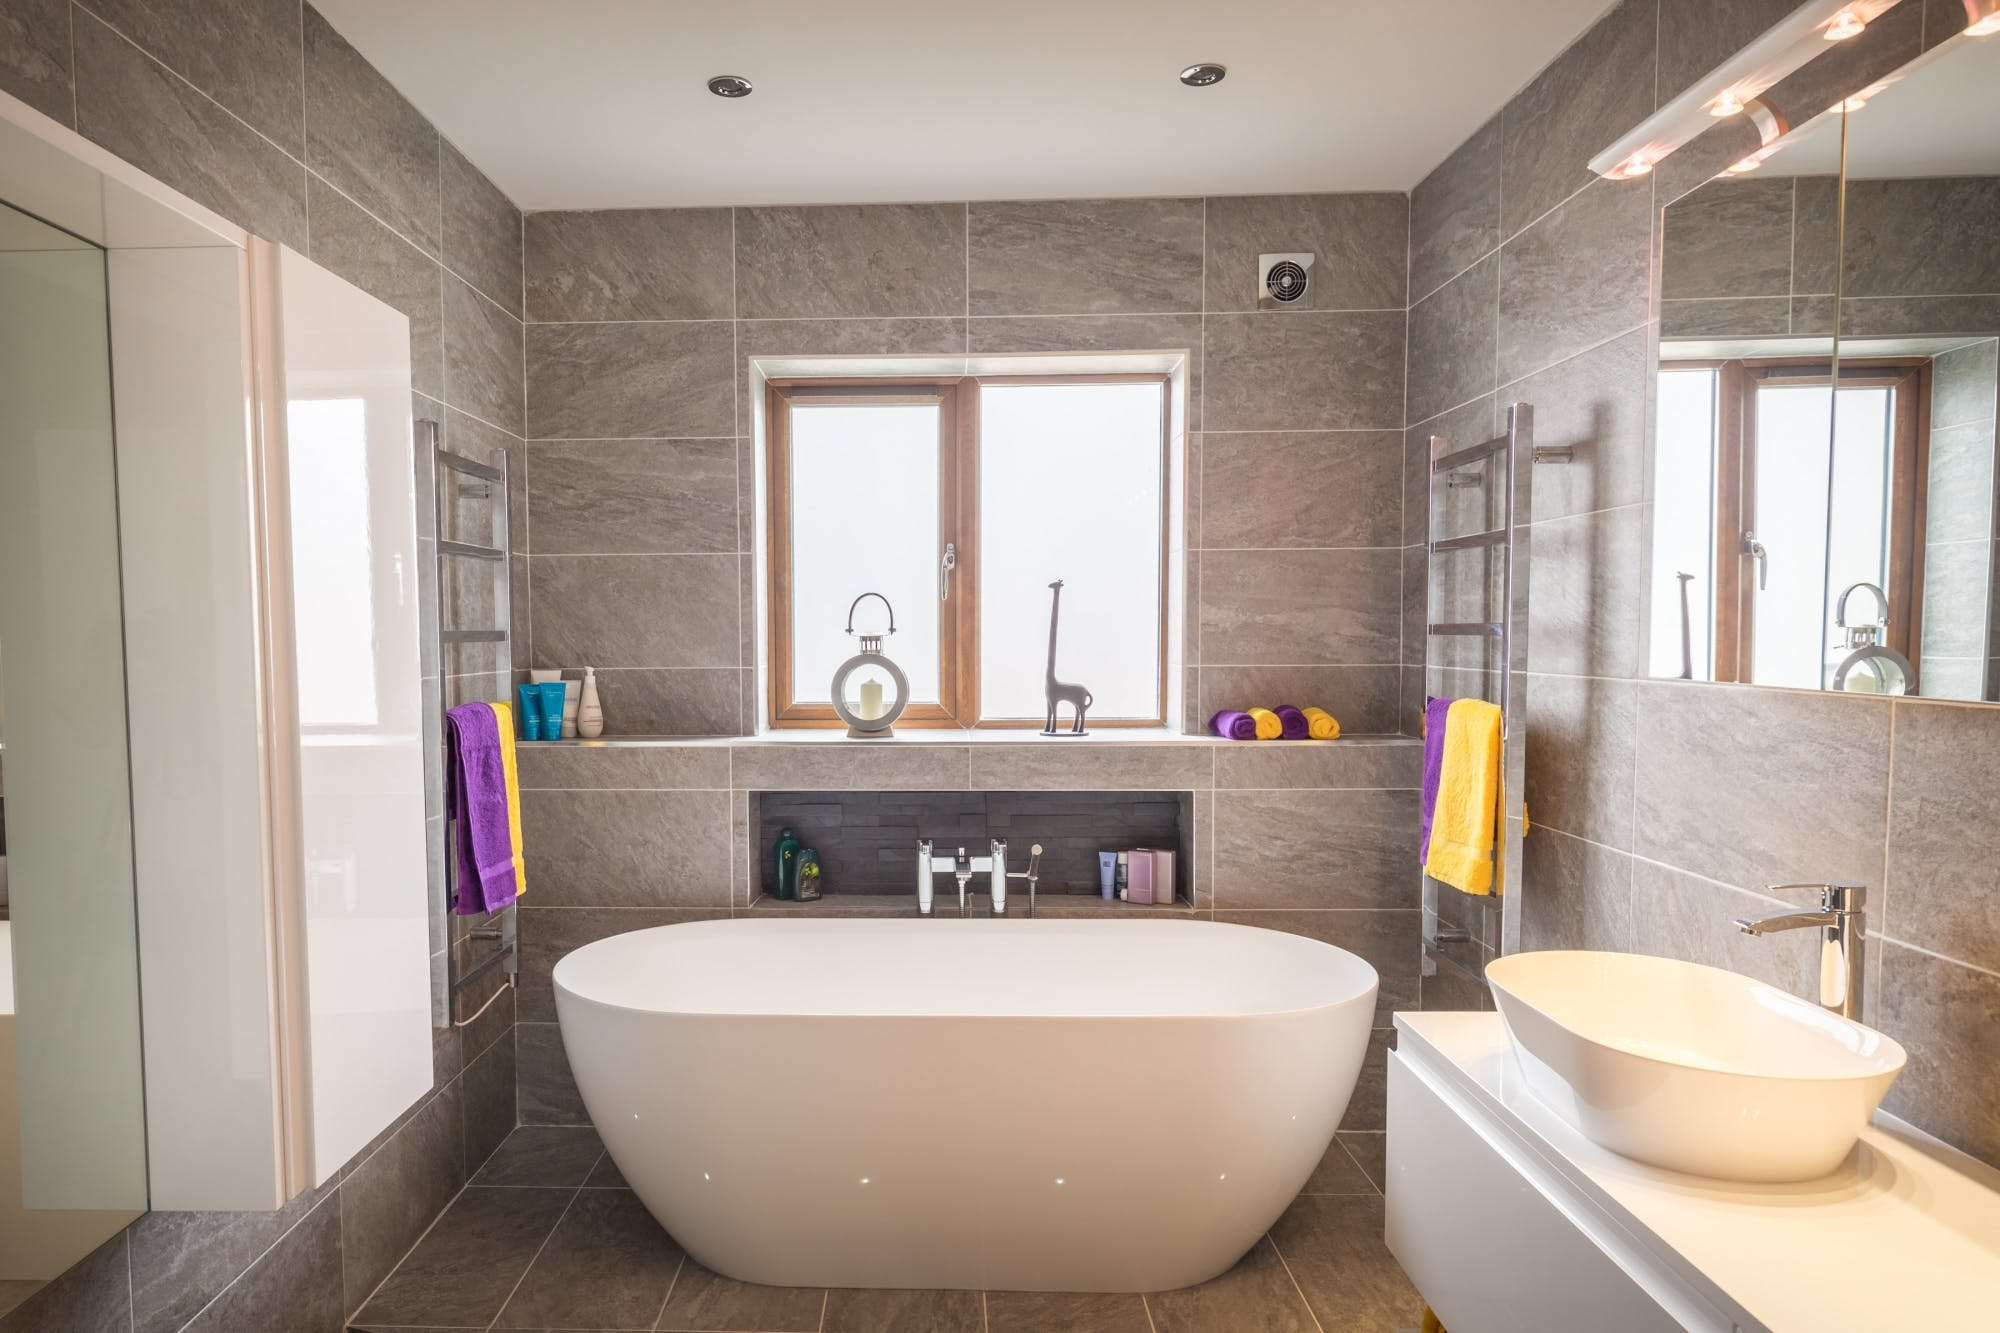 Bespoke Bathroom Design | Twenty 5 Design, Wakefield